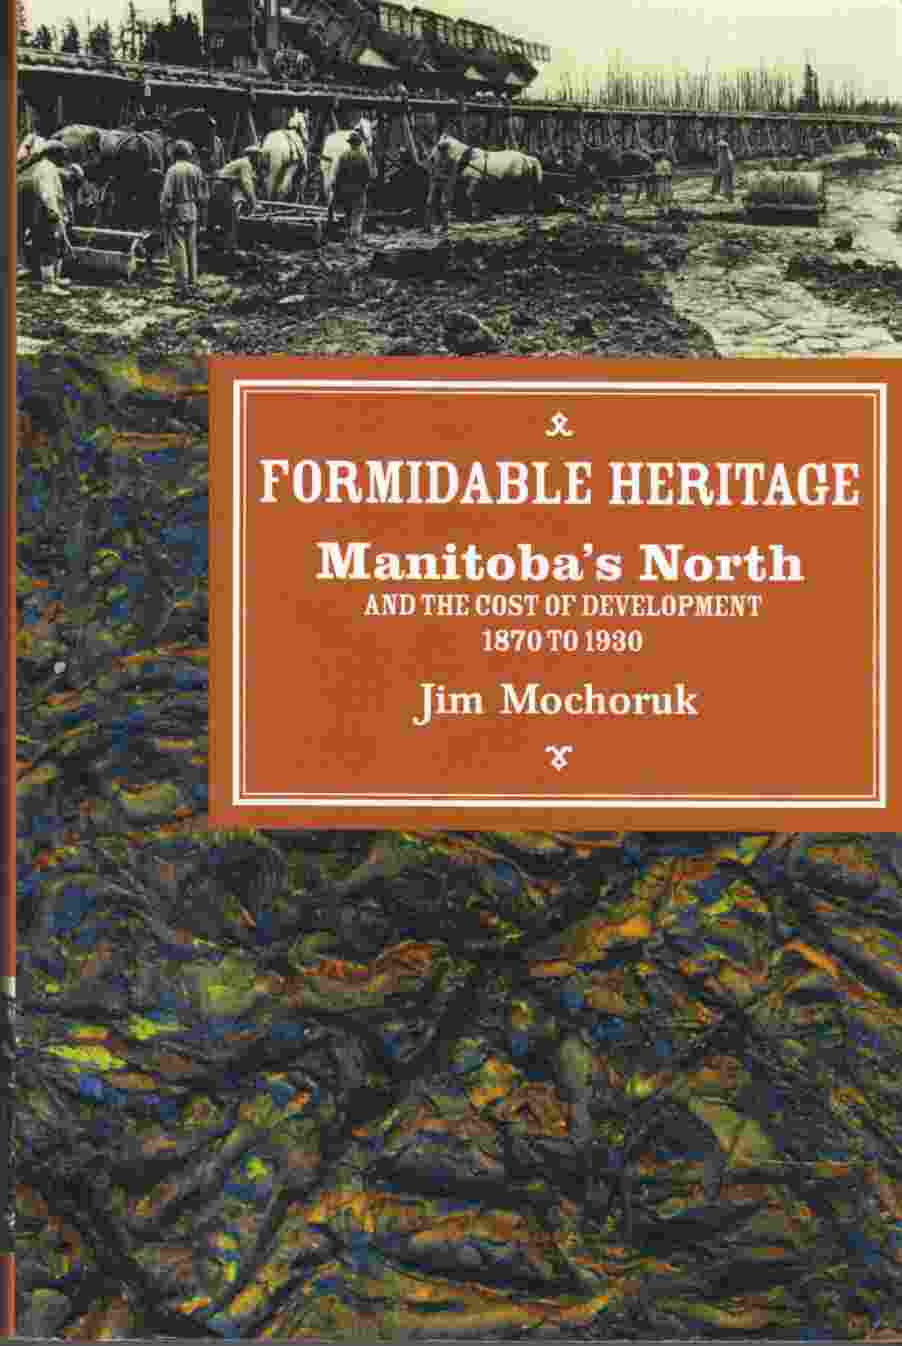 Image for Formidable Heritage Manitoba's North and the Cost of Development 1870 to 1930